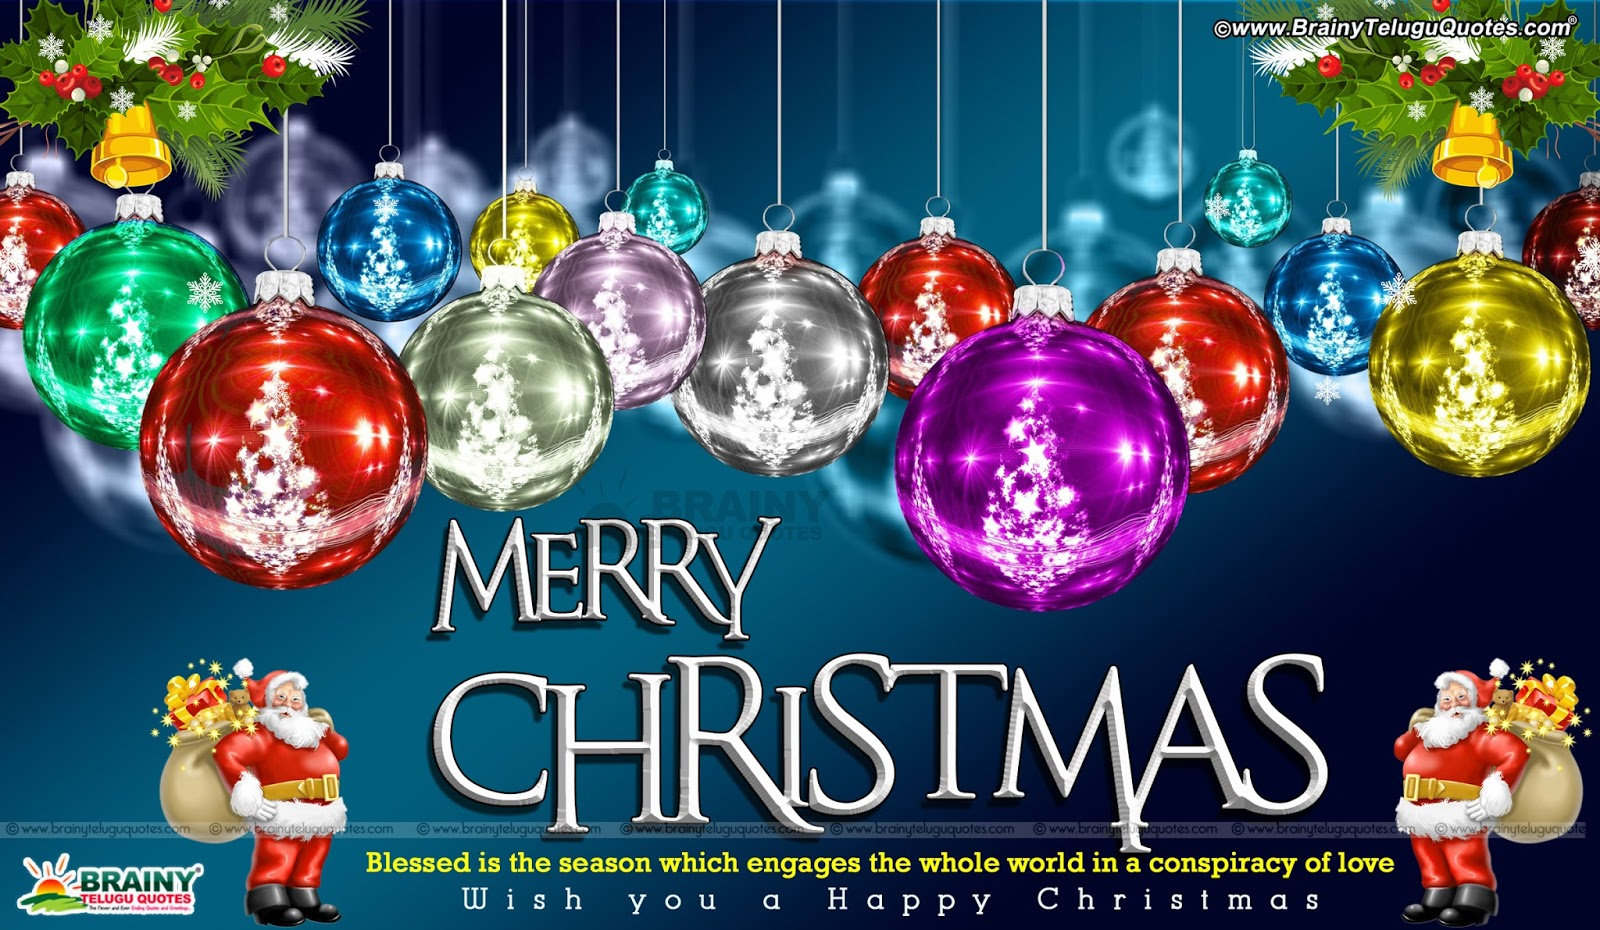 Merry Christmas Greetings With Inspirational Messages Christmas